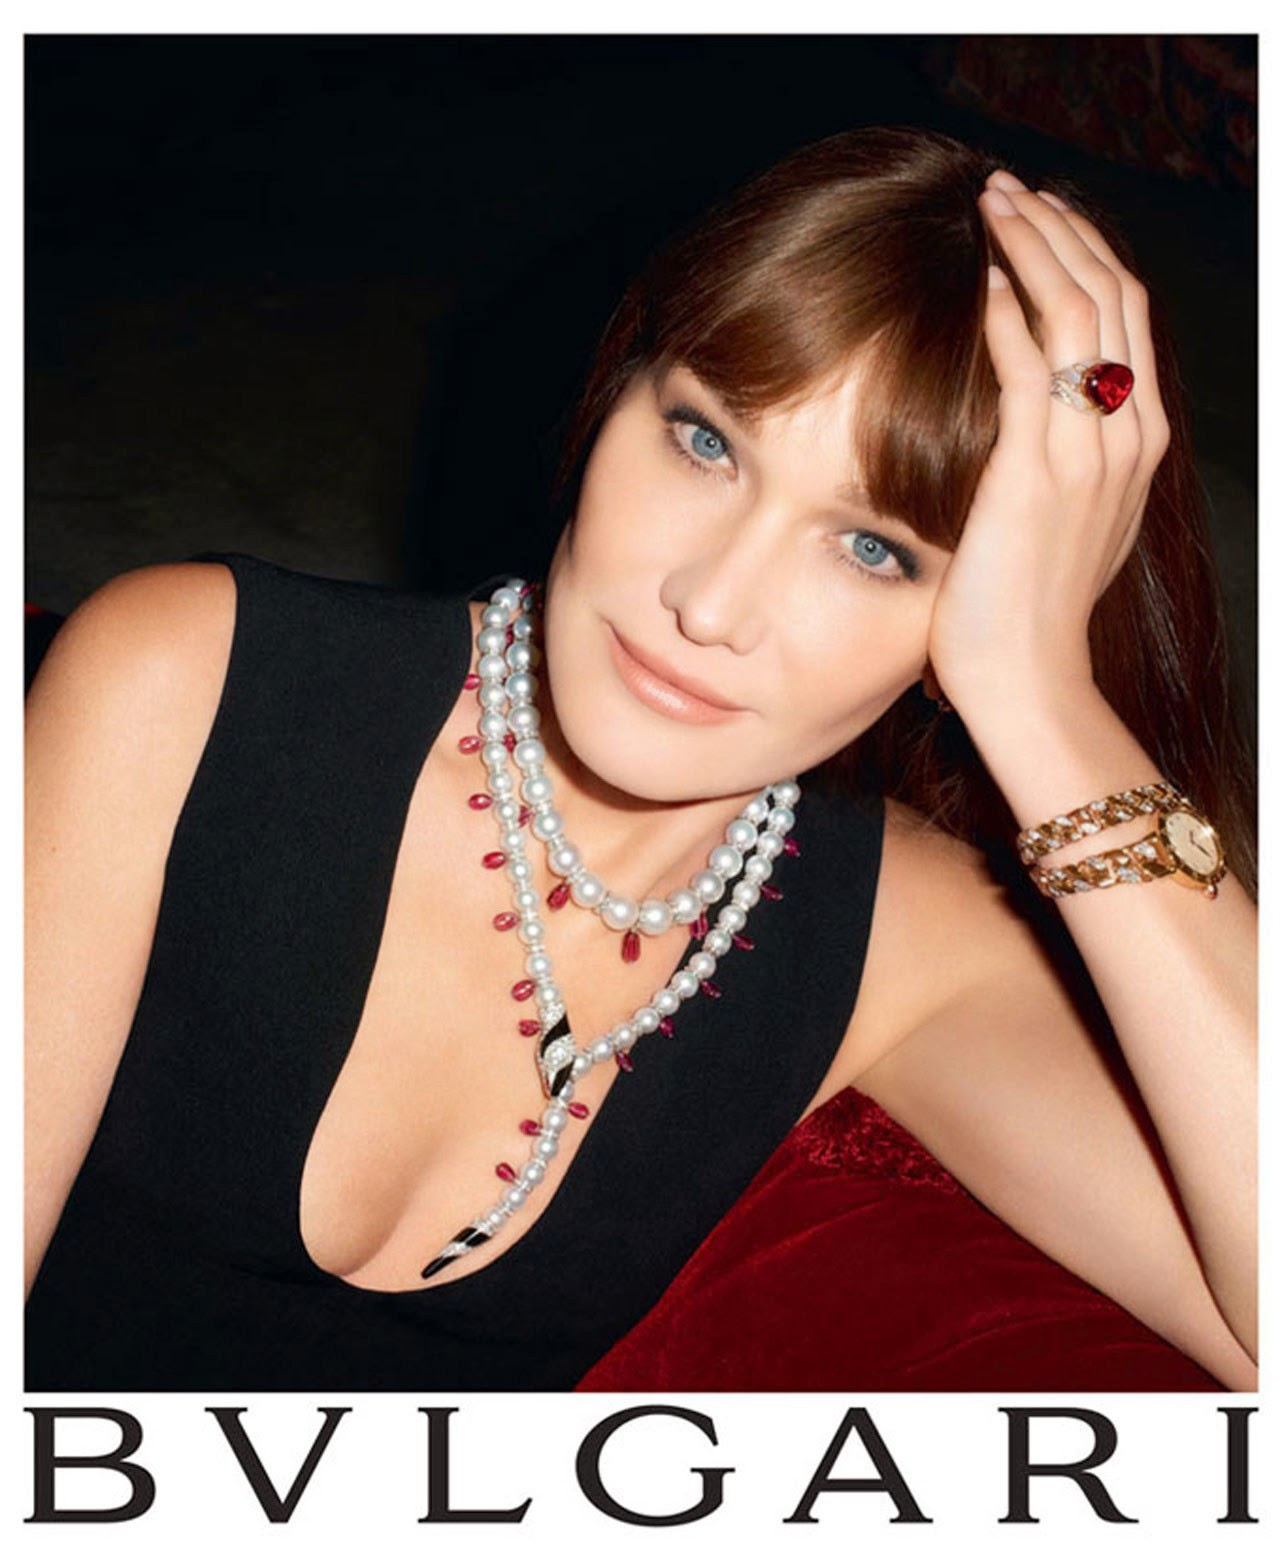 Eniwhere Fashion - News on Fashion - Carla Bruni